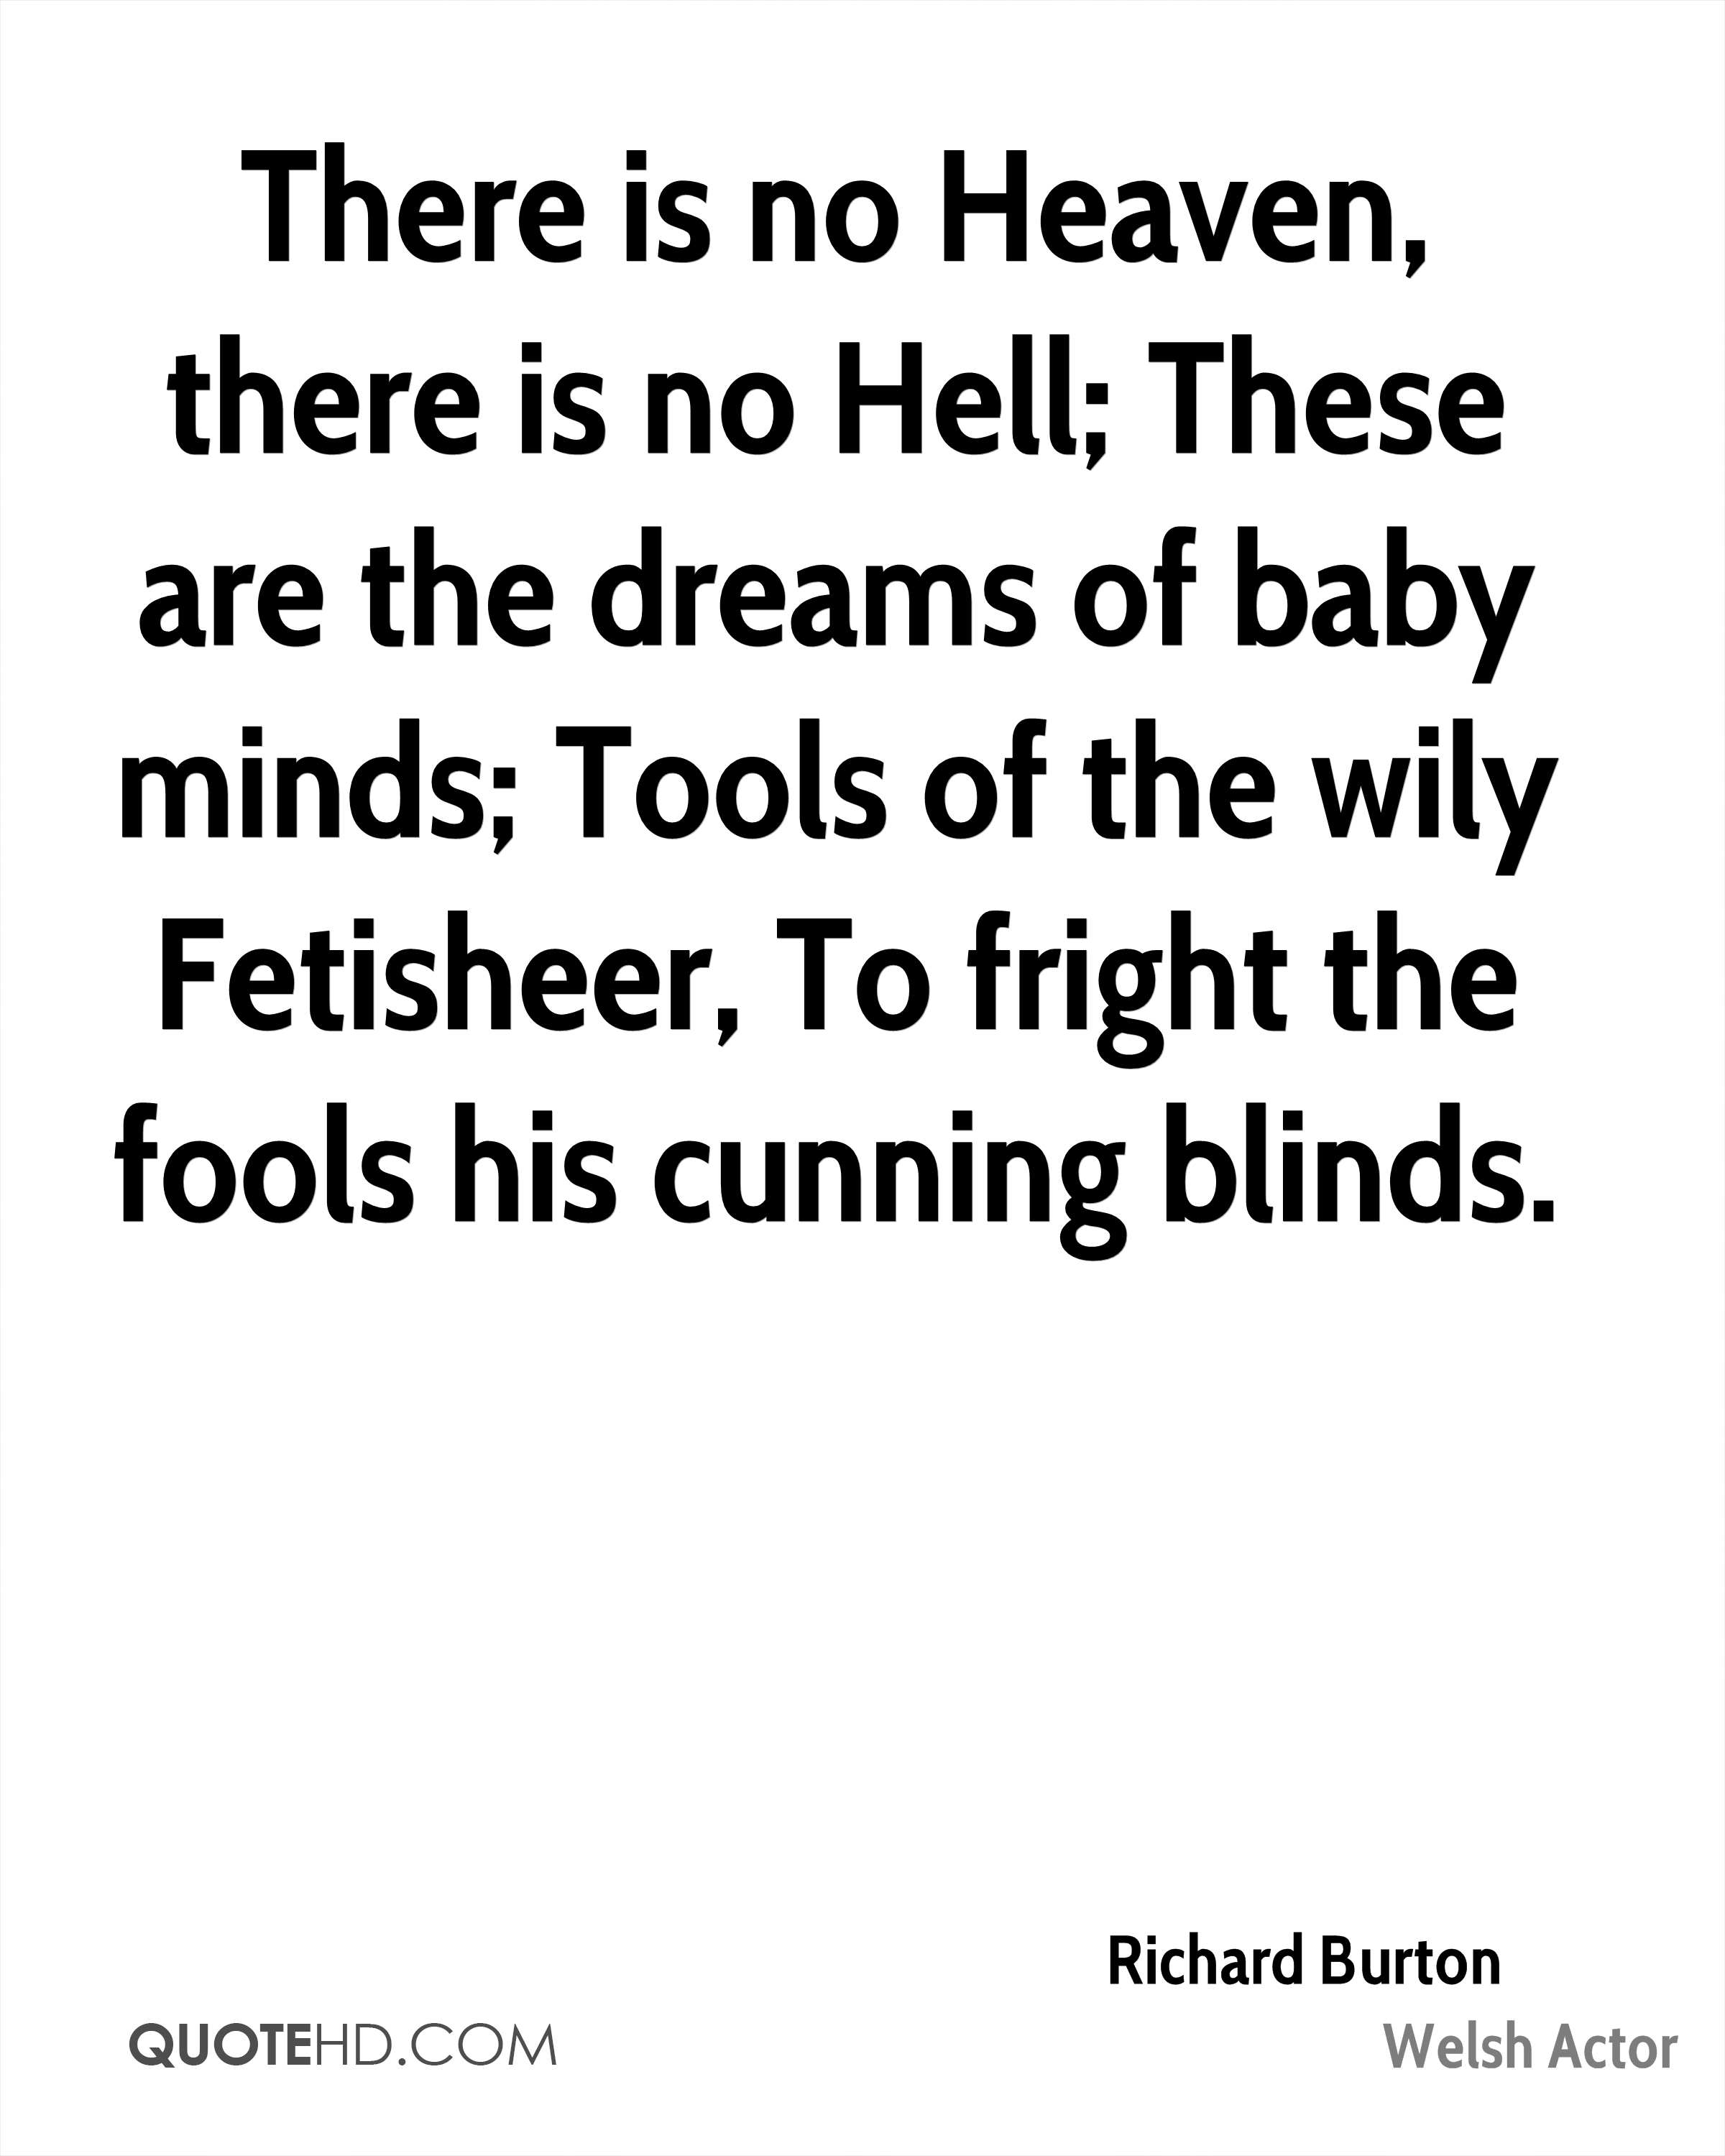 There is no Heaven, there is no Hell; These are the dreams of baby minds; Tools of the wily Fetisheer, To fright the fools his cunning blinds.